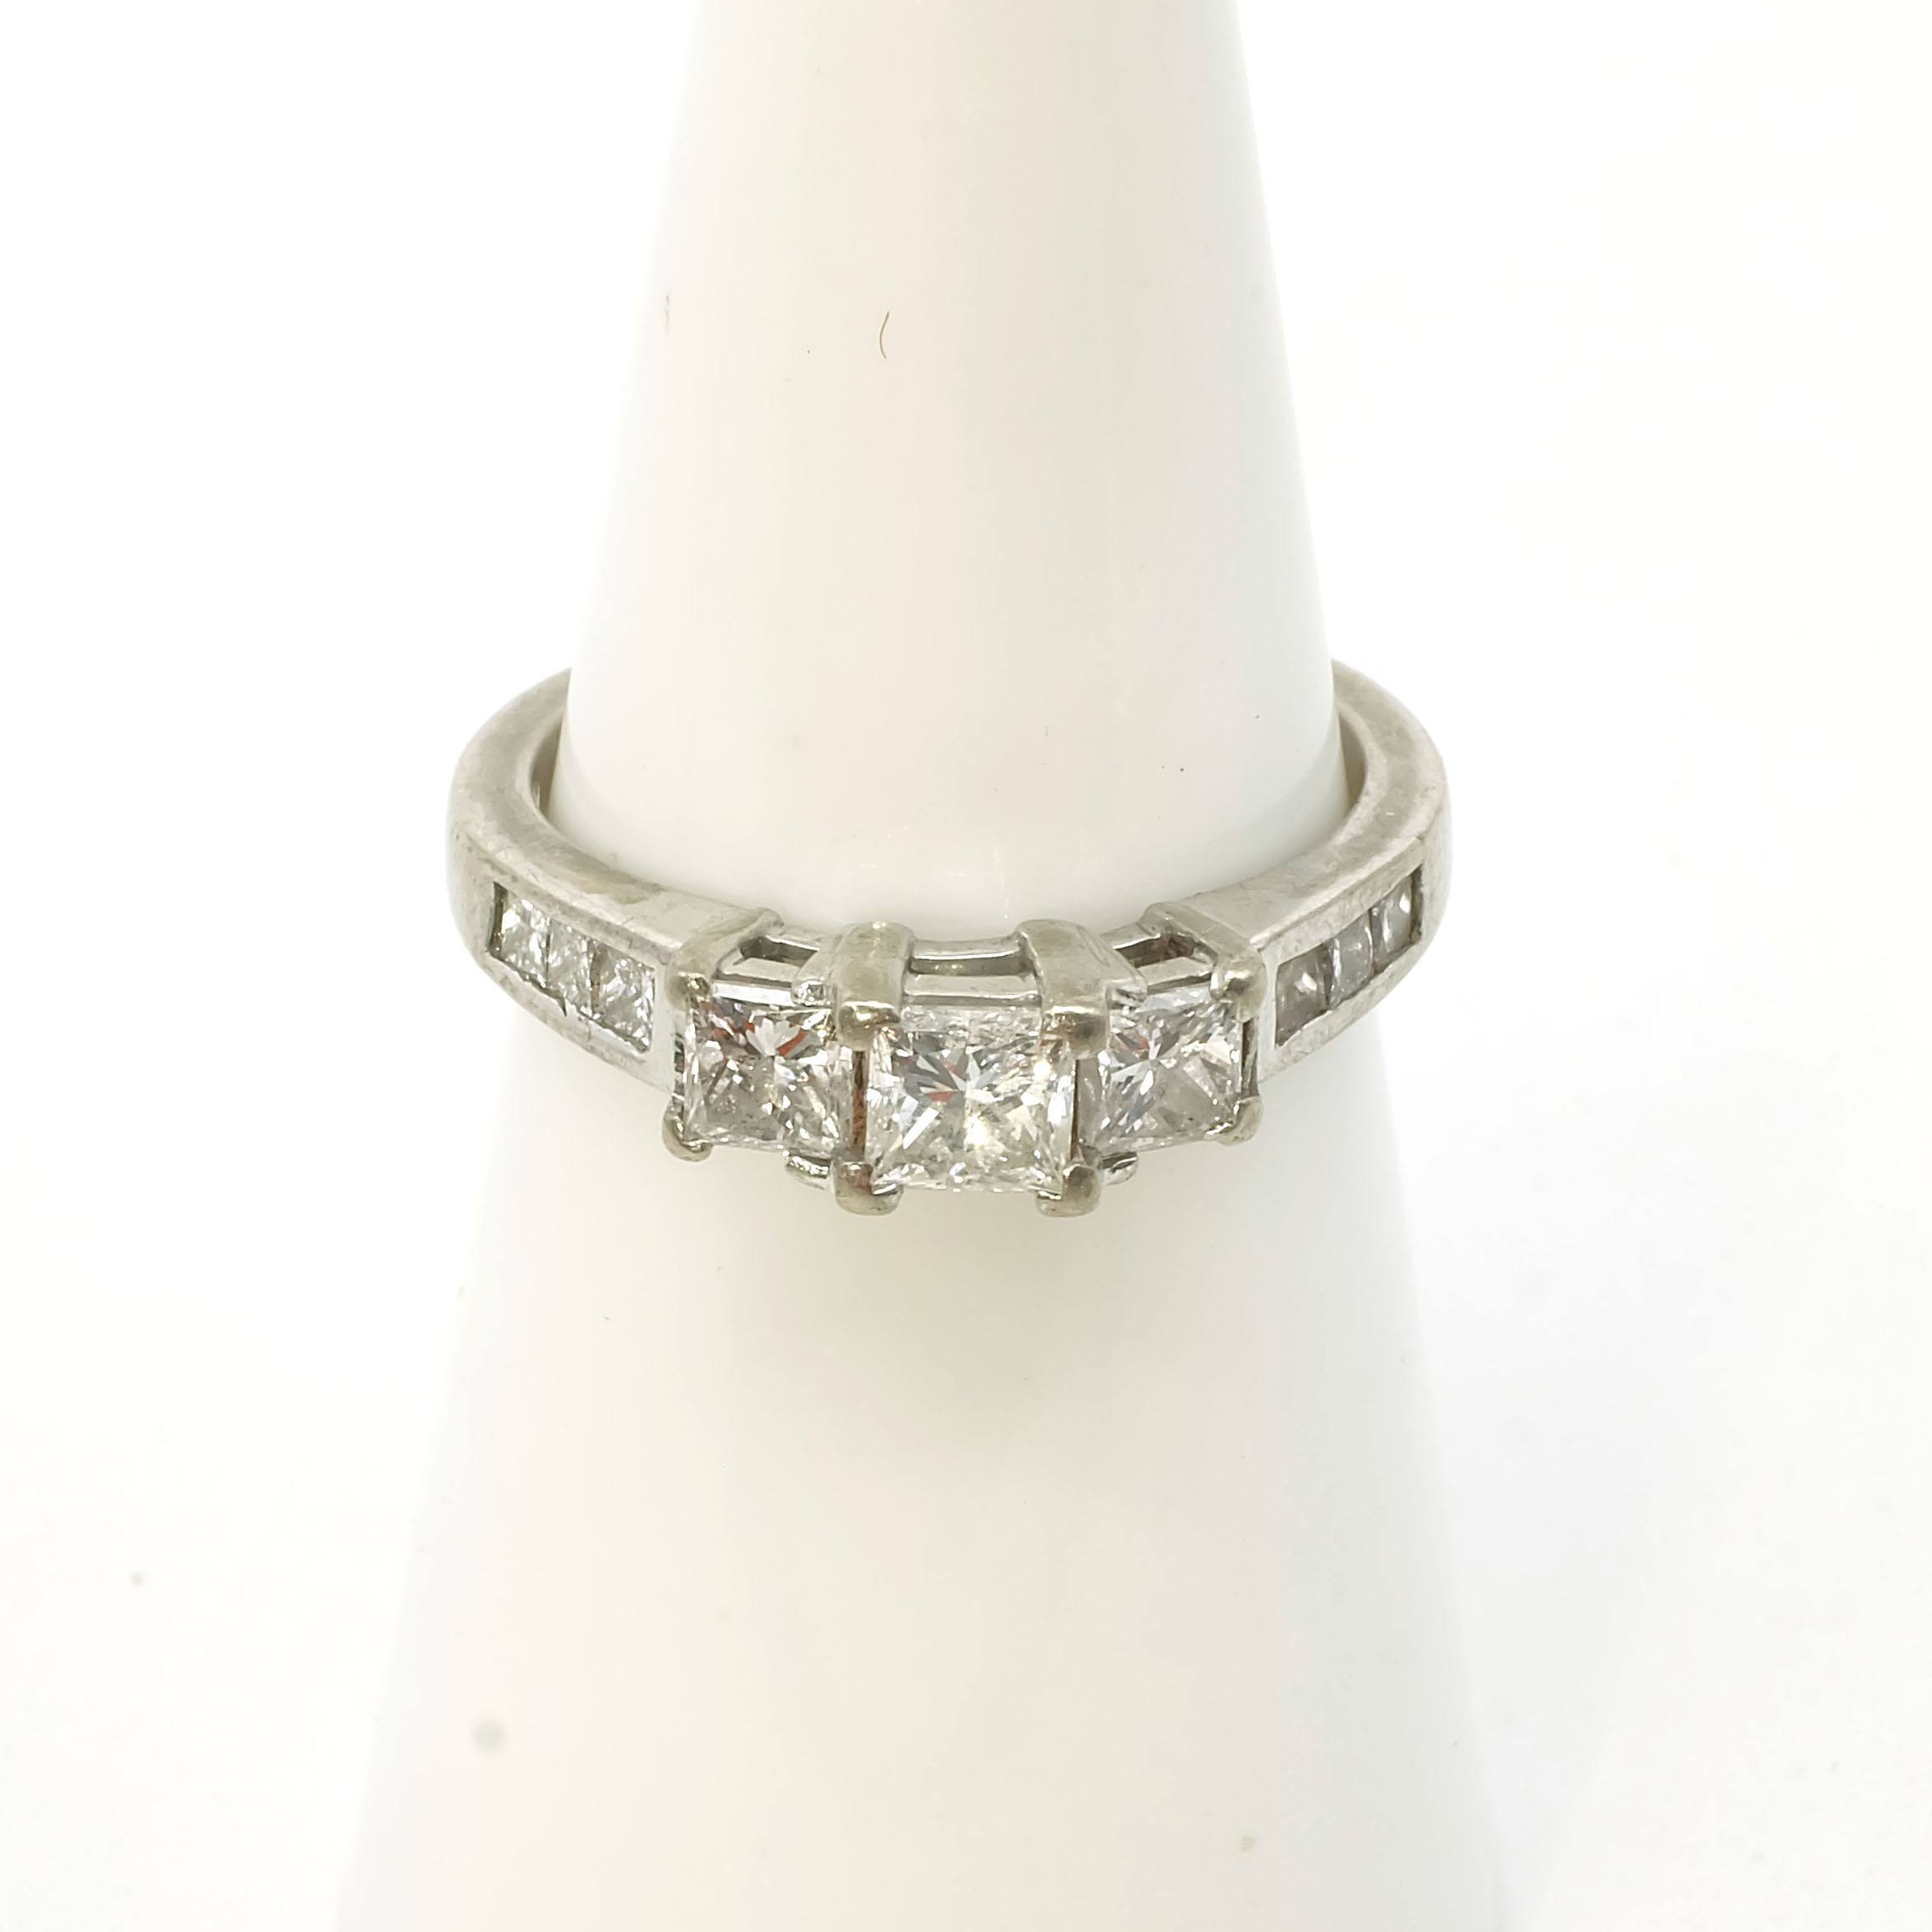 '18ct White Gold Ring with at Centre One 0.34ct Princess Cut Diamond with One 0.22ct Diamond Either Side, 3.6g'